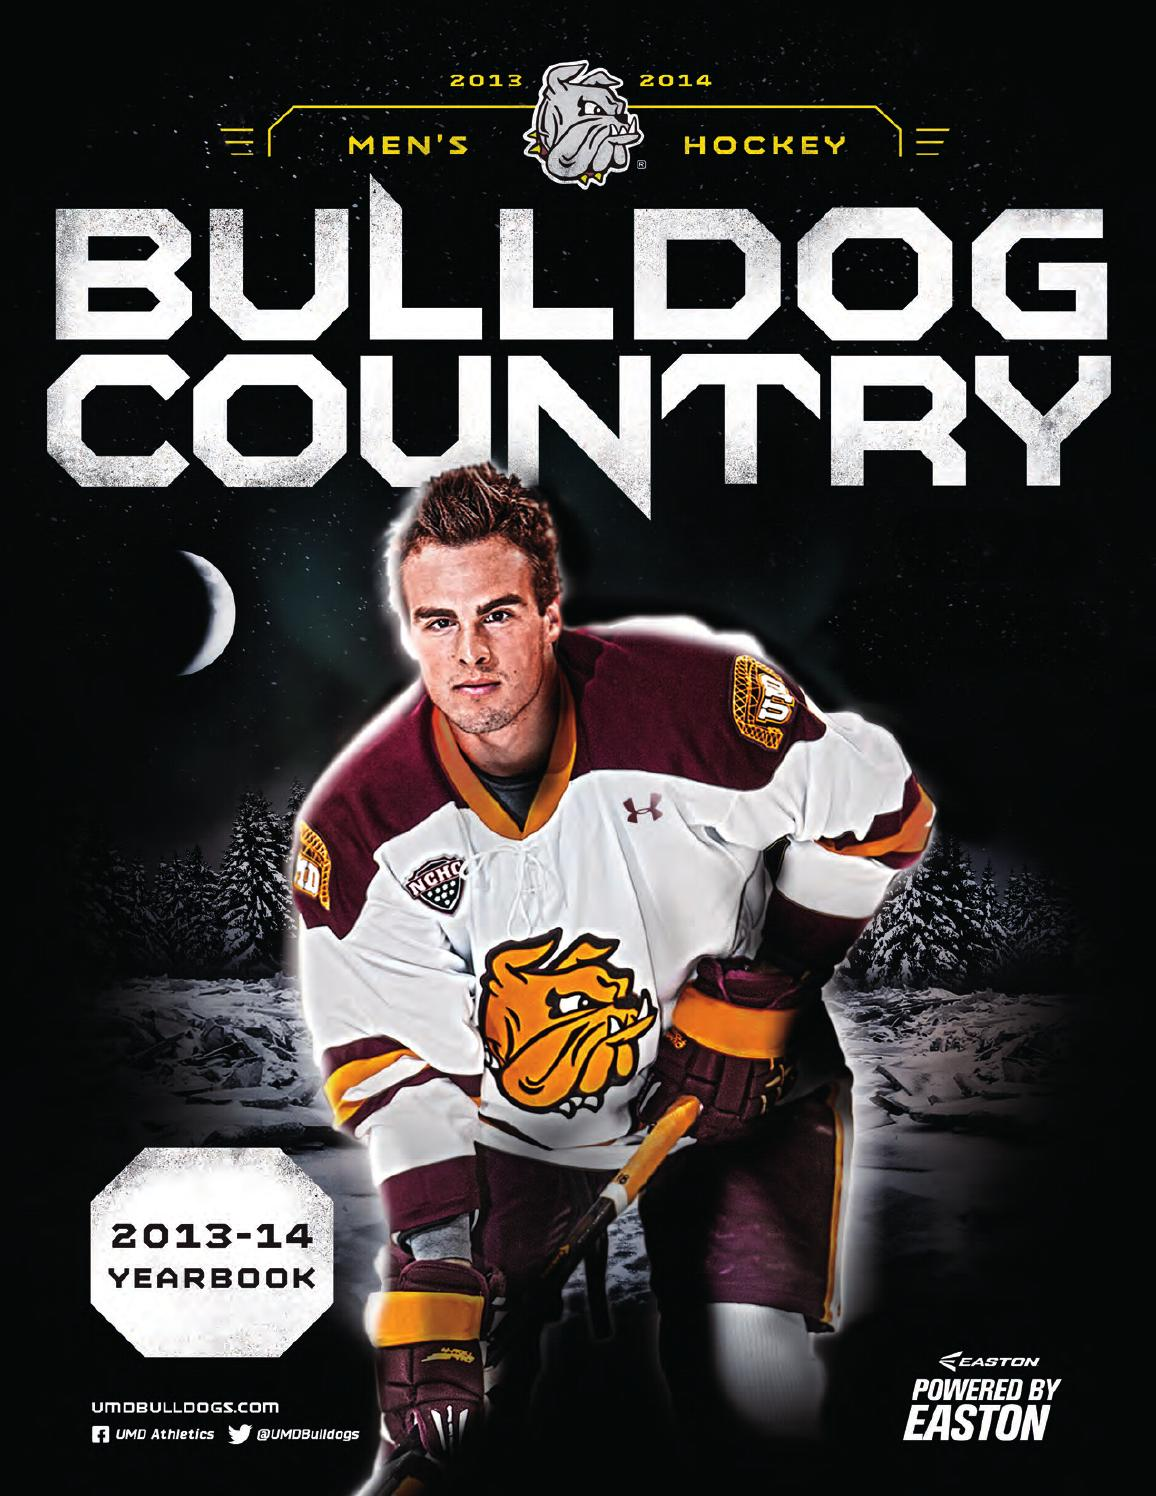 umd bulldog hockey tickets umd men s hockey media guide yearbook by umd bulldogs issuu 1125